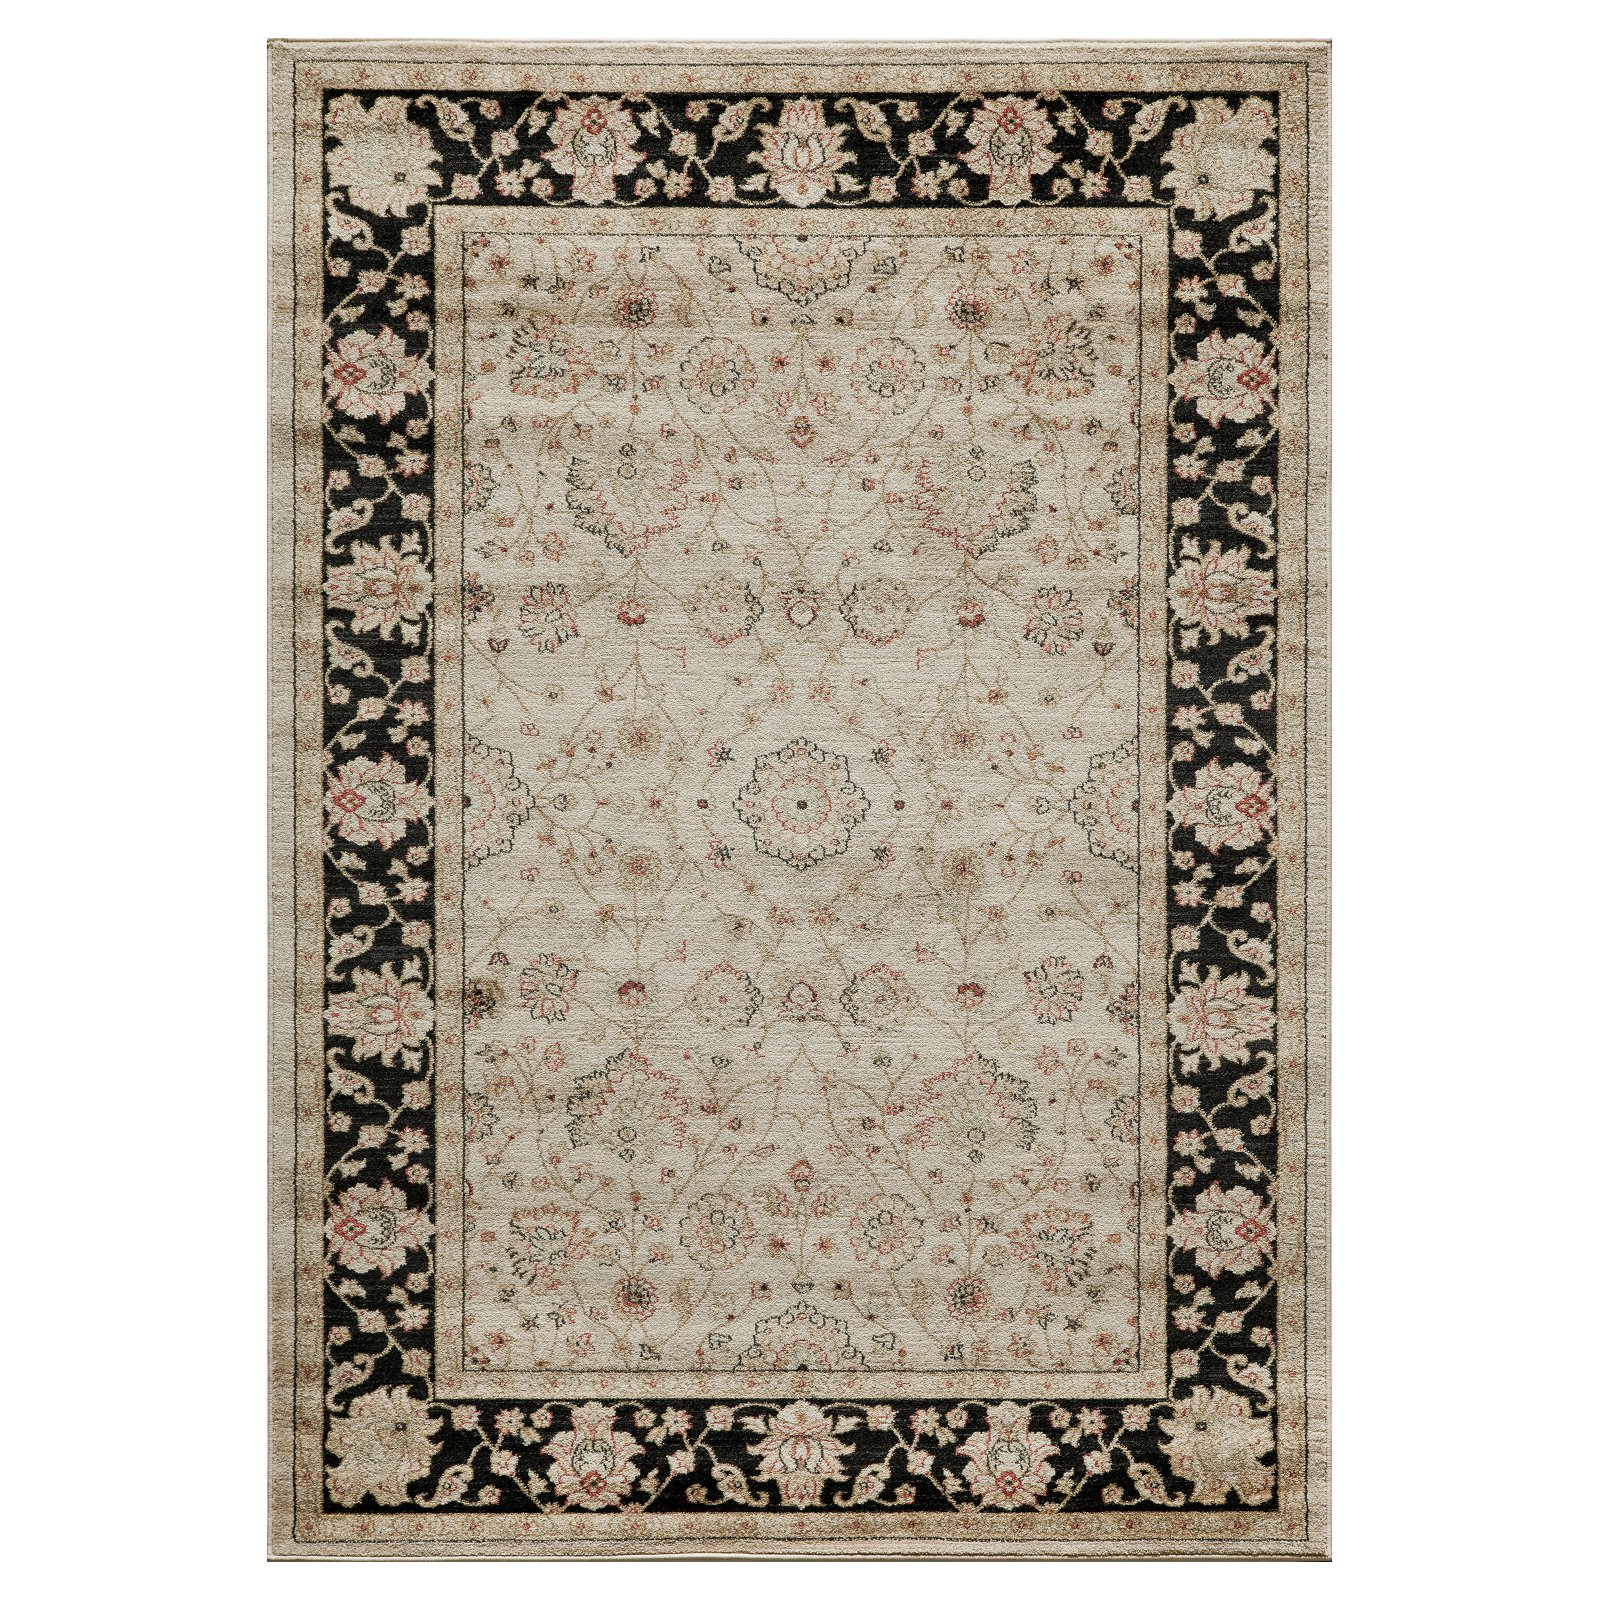 Momeni Ziegler Traditions Area Rug